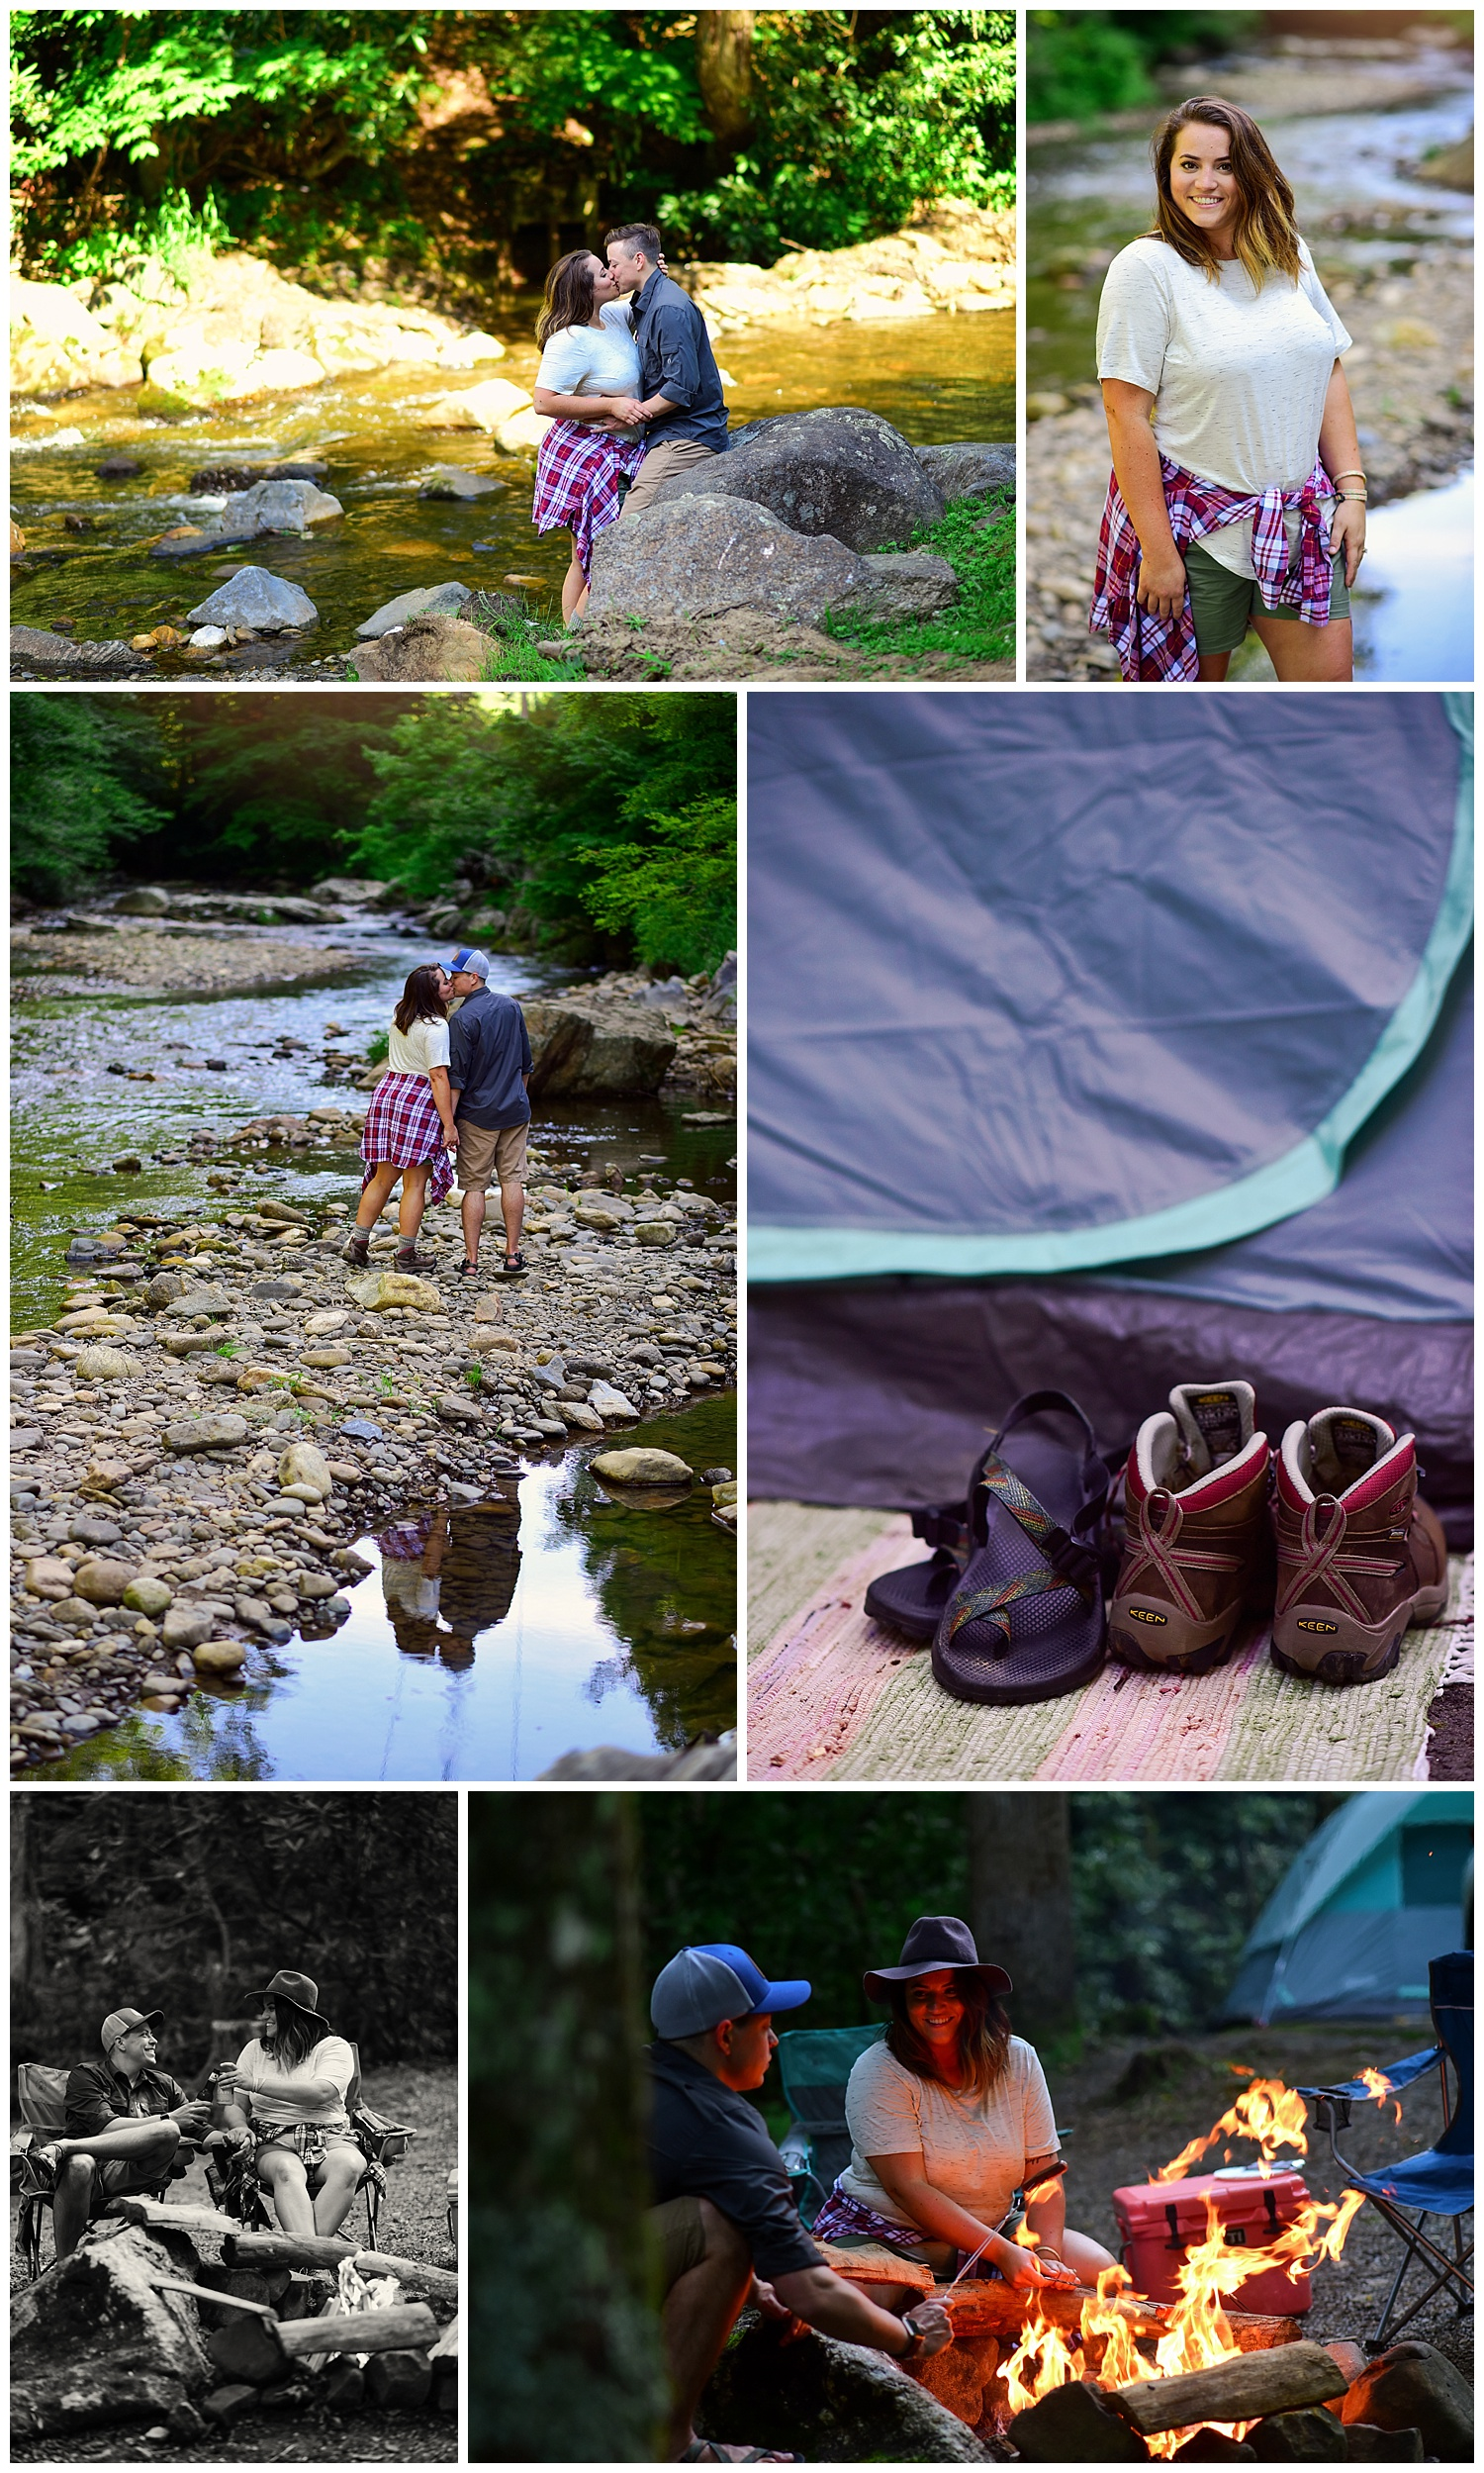 Camping photo shoot